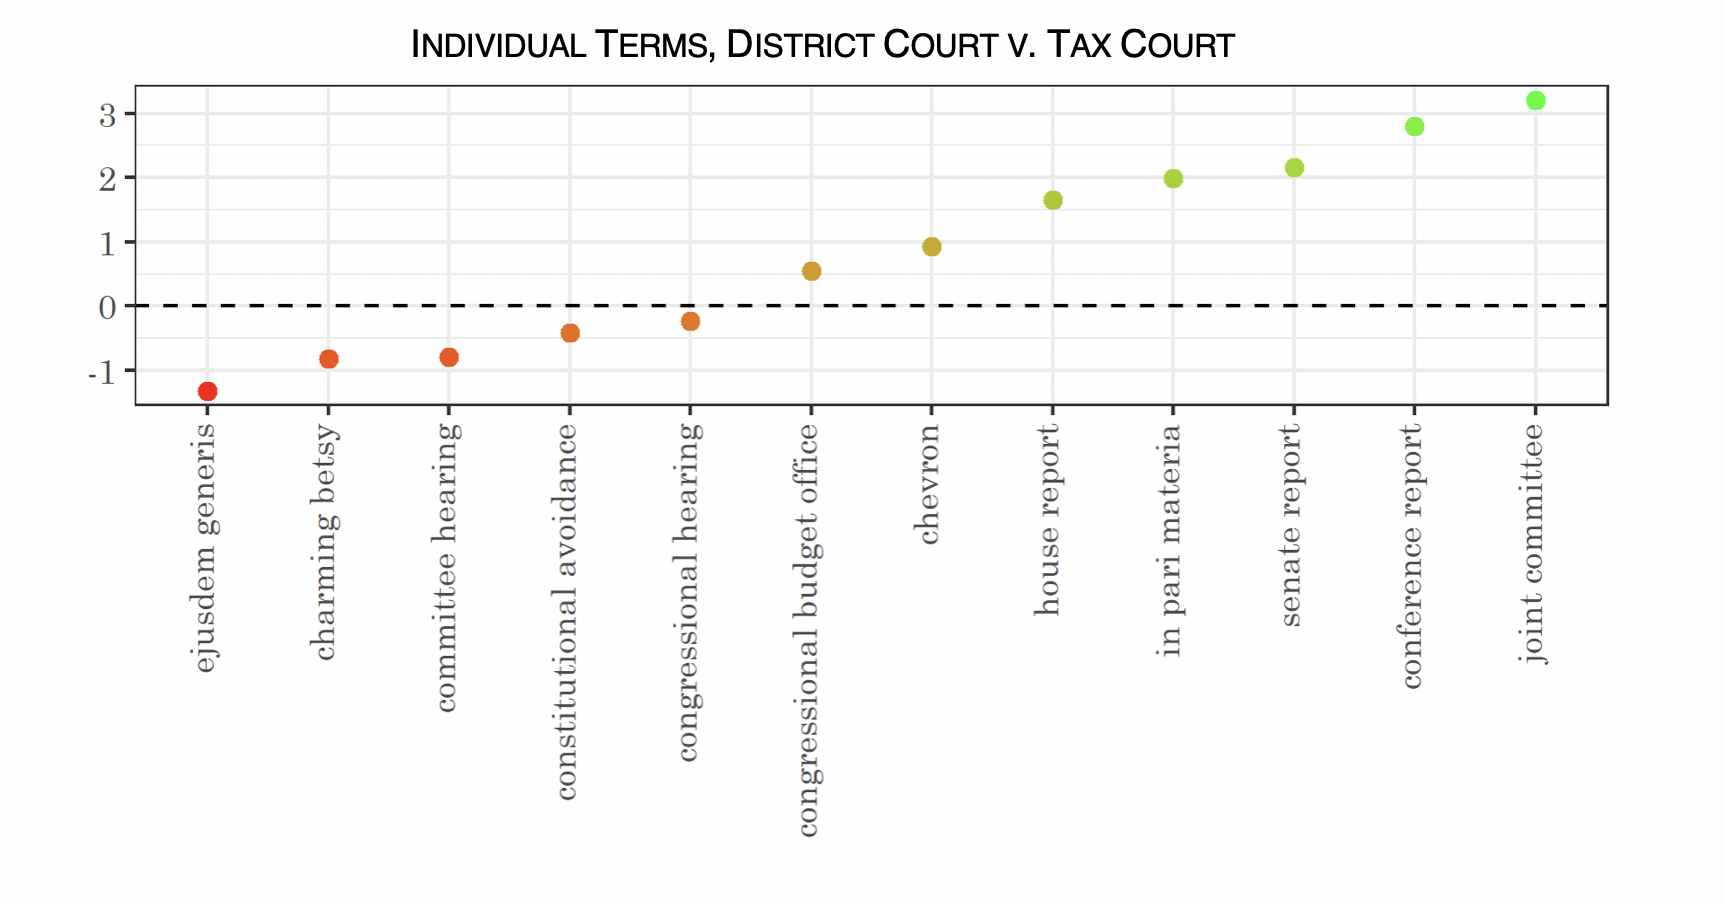 Graph showing individual terms and the strength of their relationship to District Courts or Tax Court.